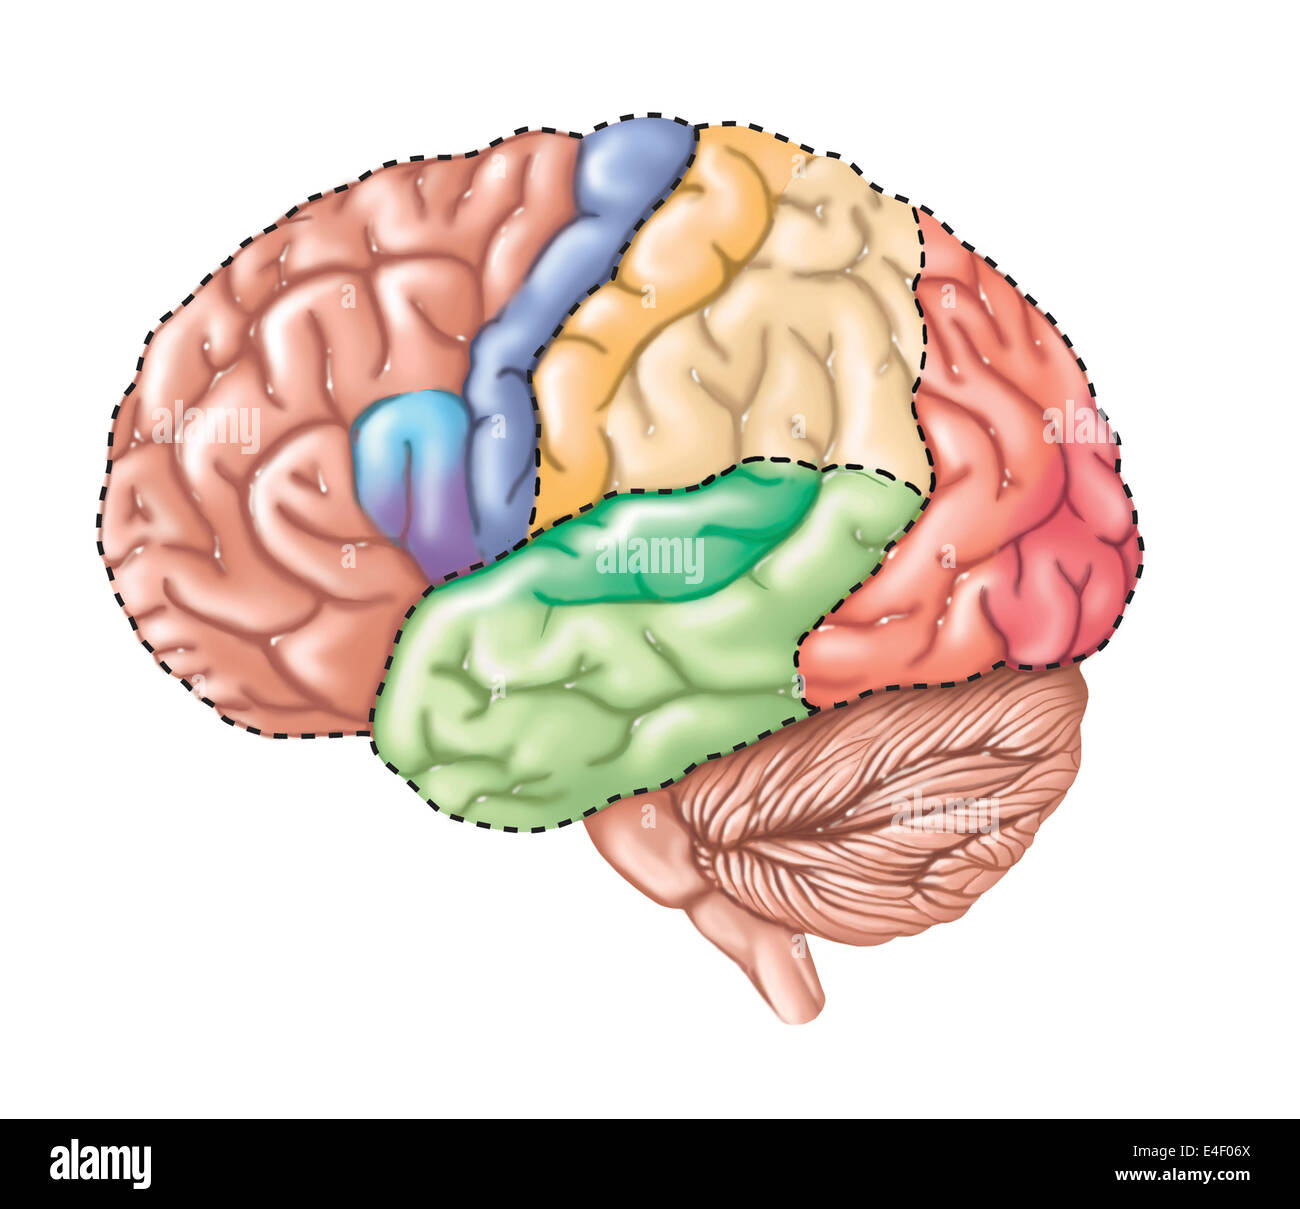 Side view of the human brain showing the functional lobes. - Stock Image